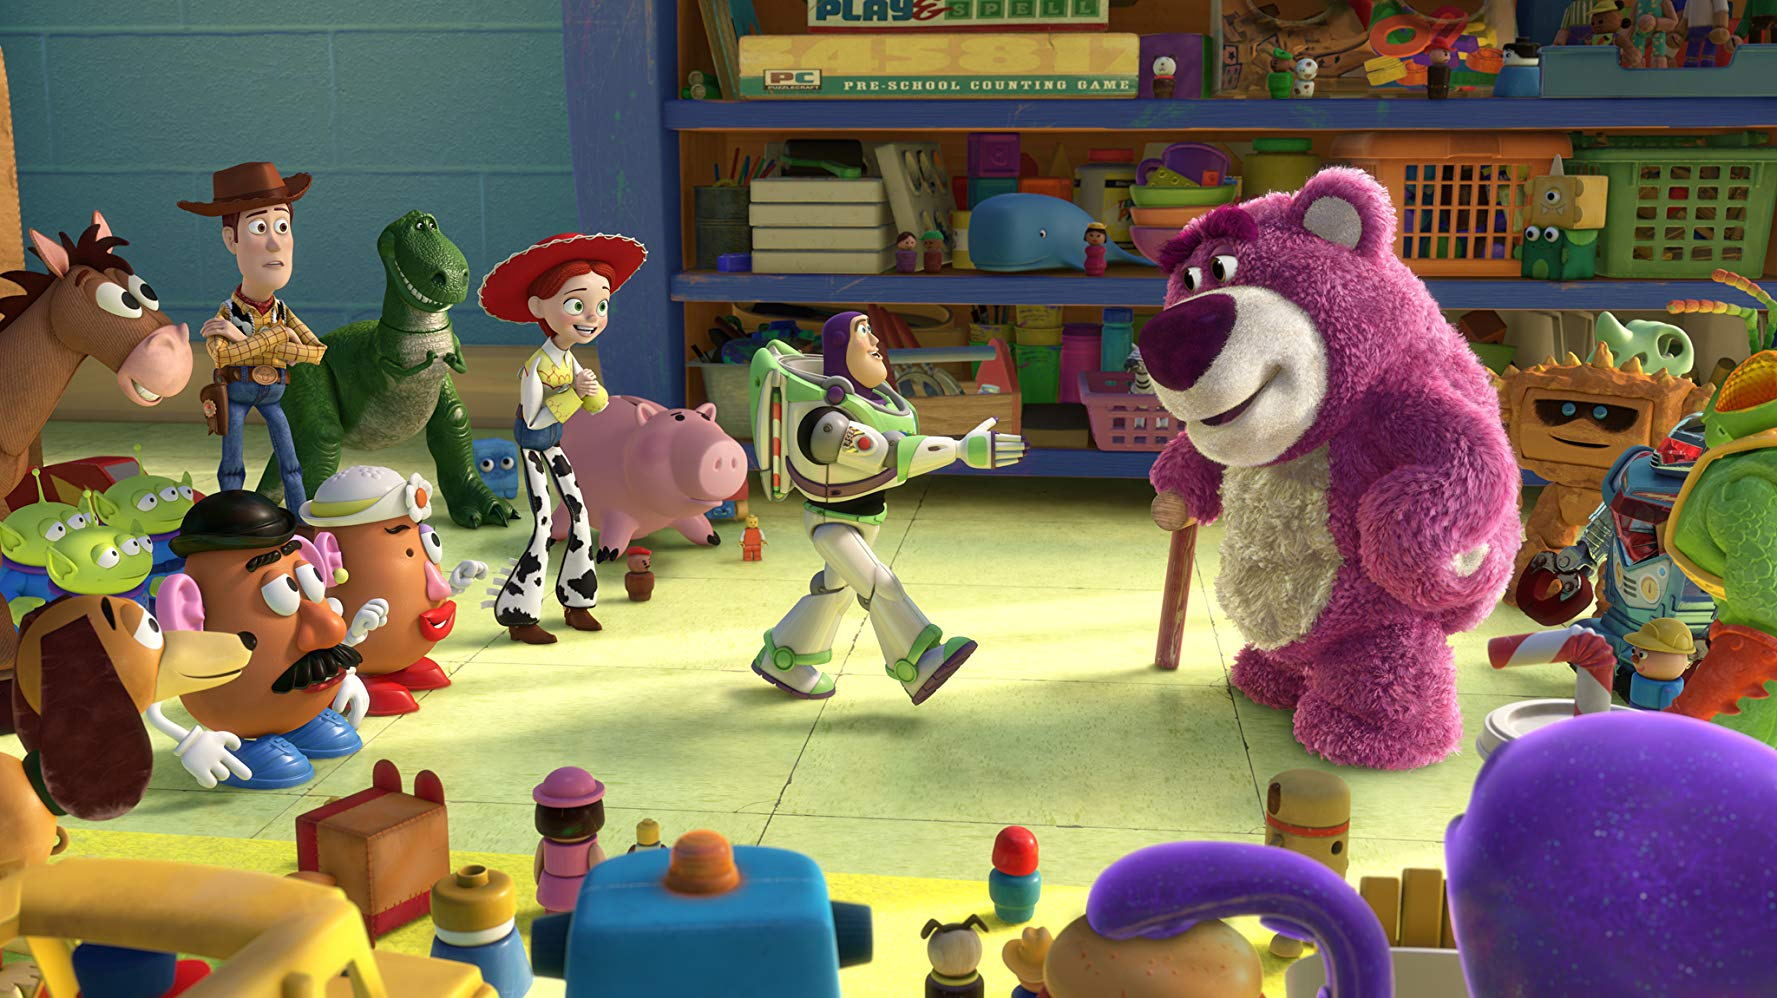 The toys are welcomed to the Sunnyside Daycare Centre by Lots-O'Huggin Bear (voiced by Ned Beatty) in Toy Story 3 (2010)